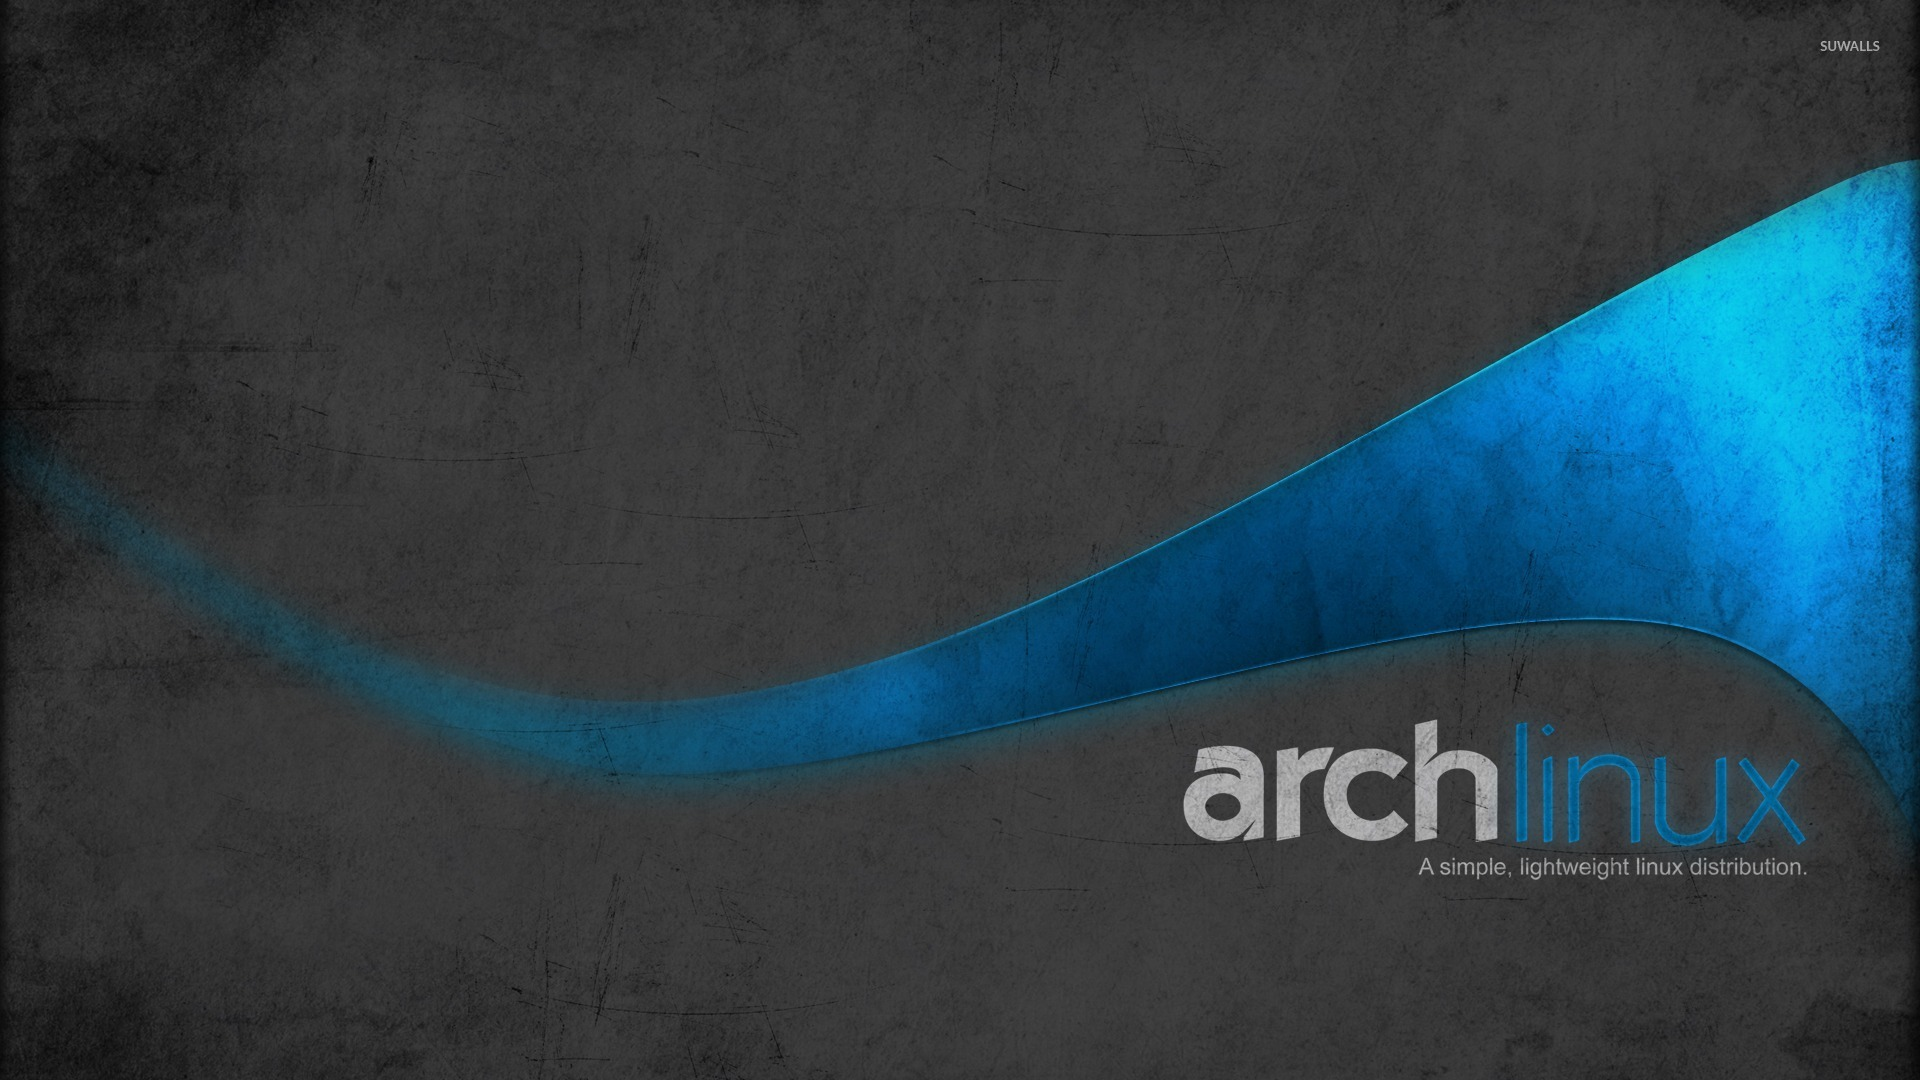 Arch Linux wallpaper - Computer wallpapers - #1503